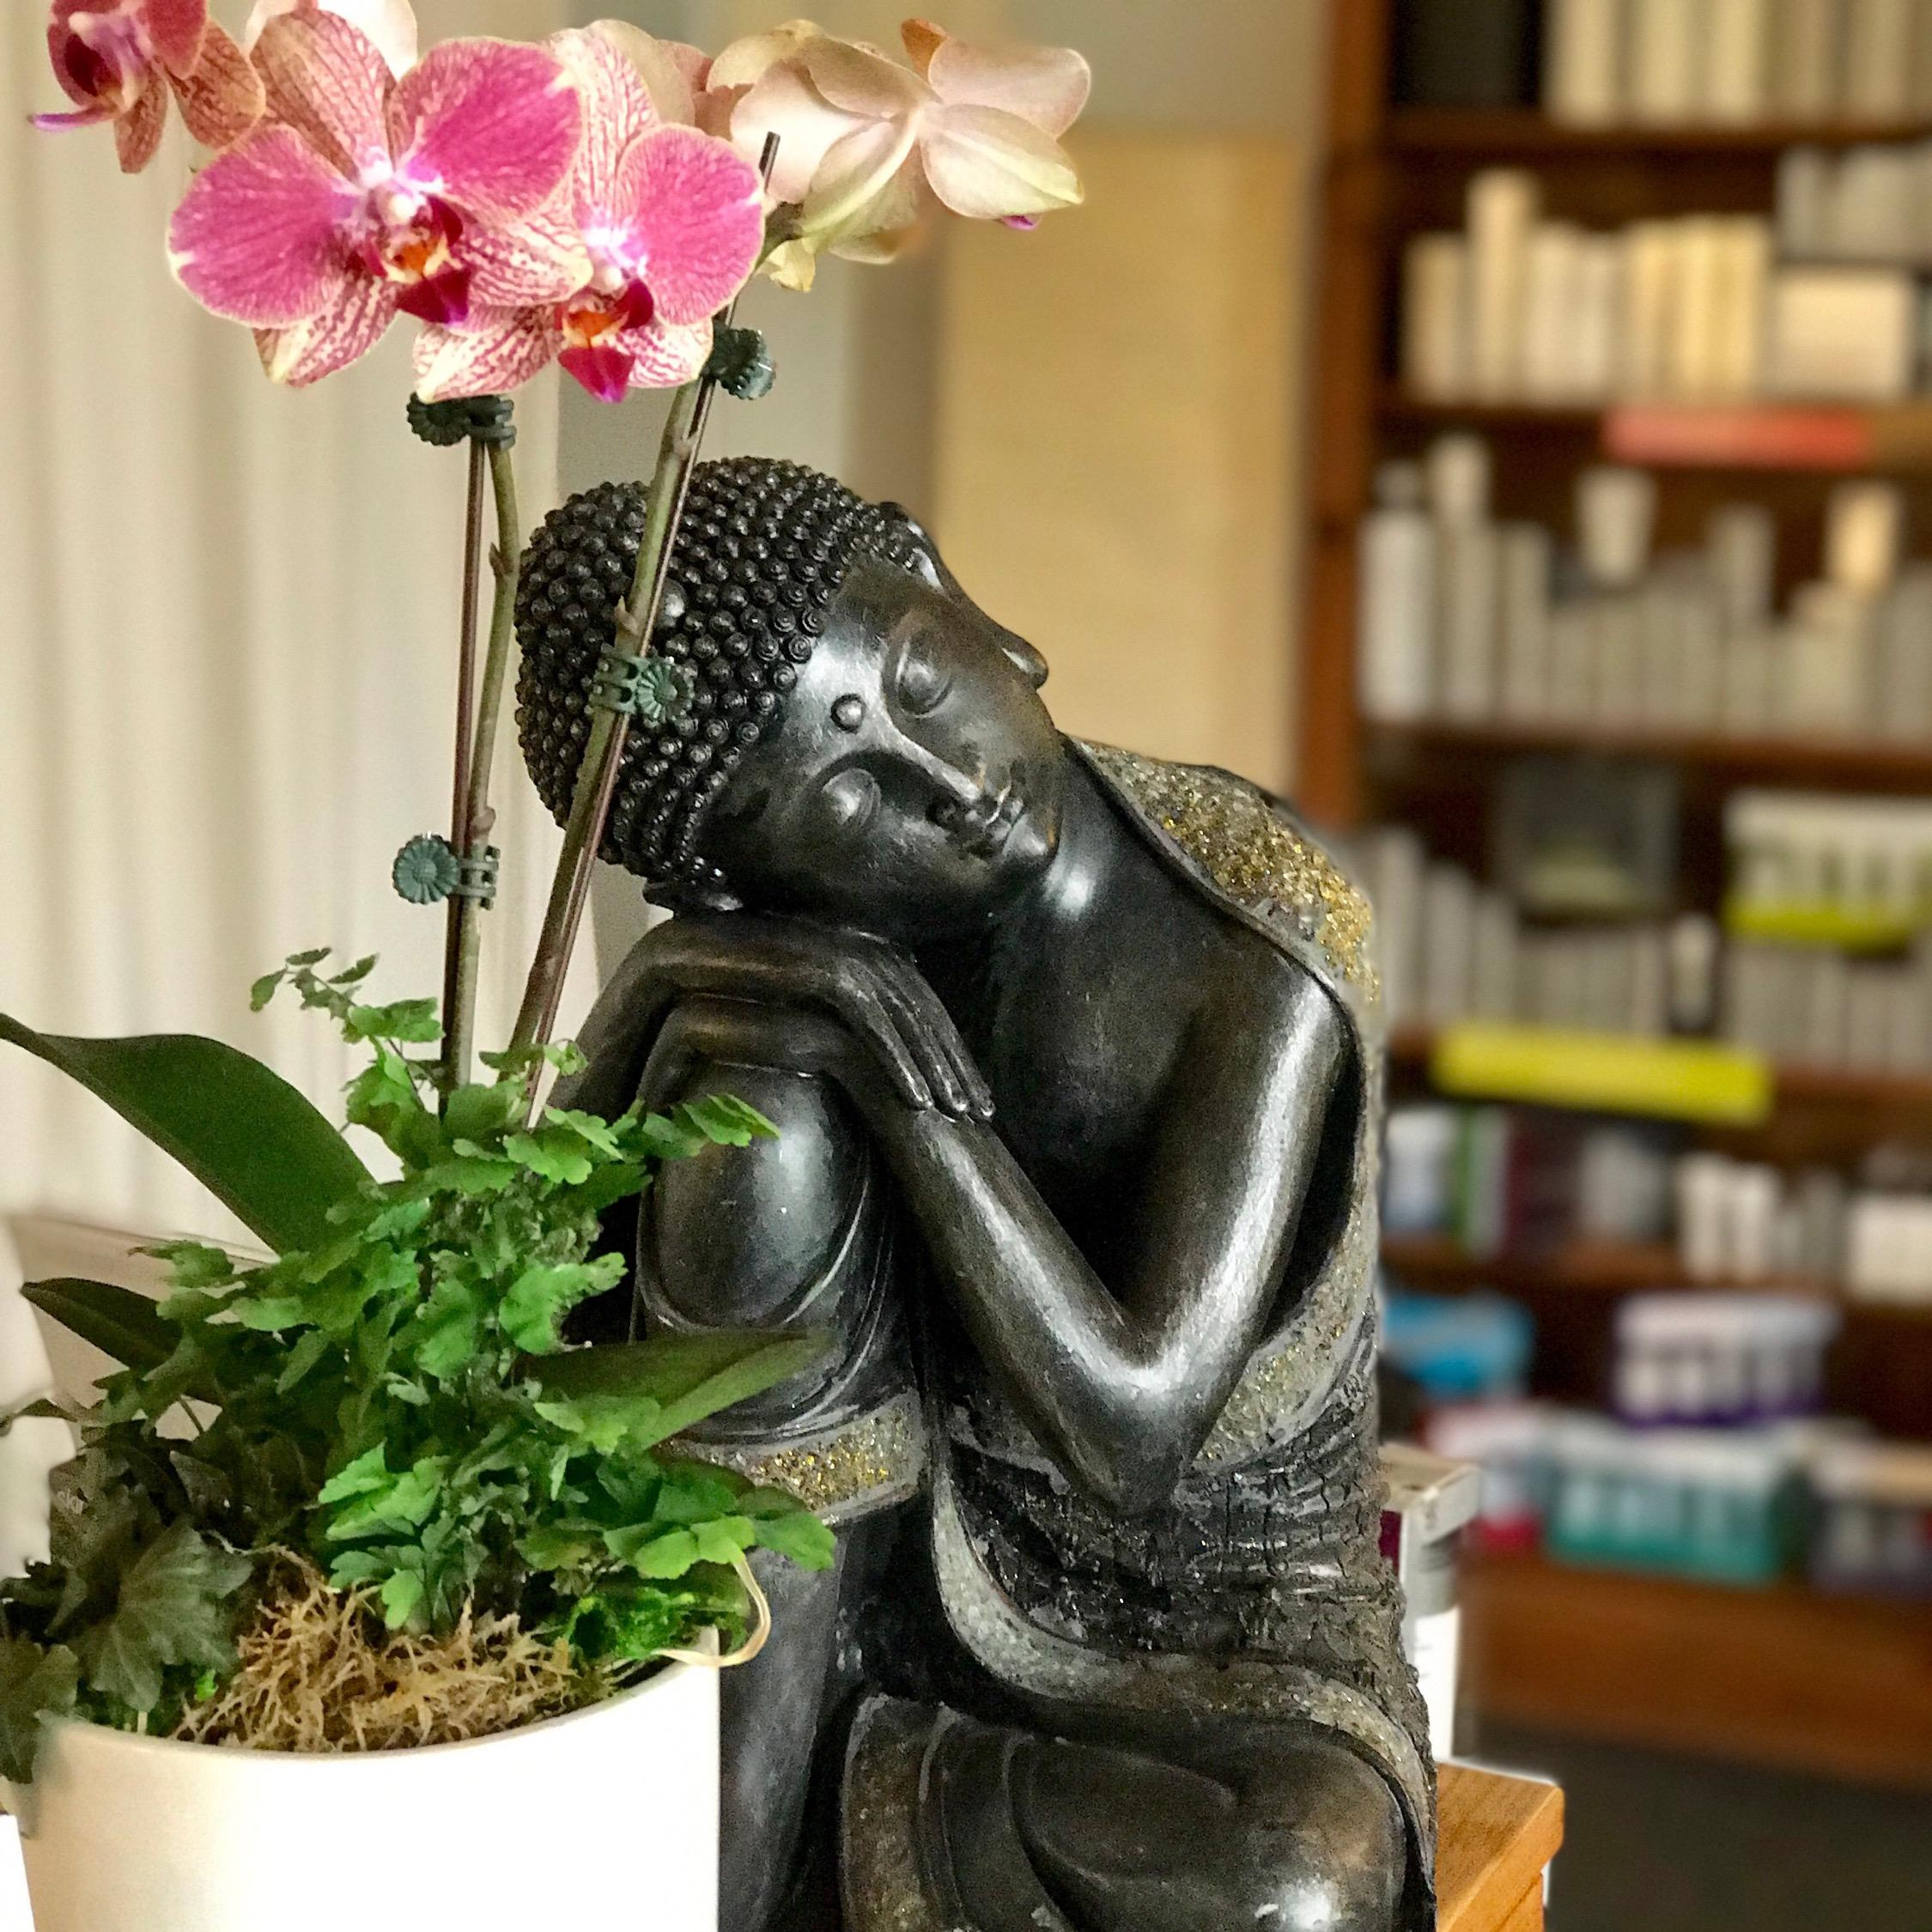 Tranquility Skin and Body Care - Santa Monica, CA - Dermatologists